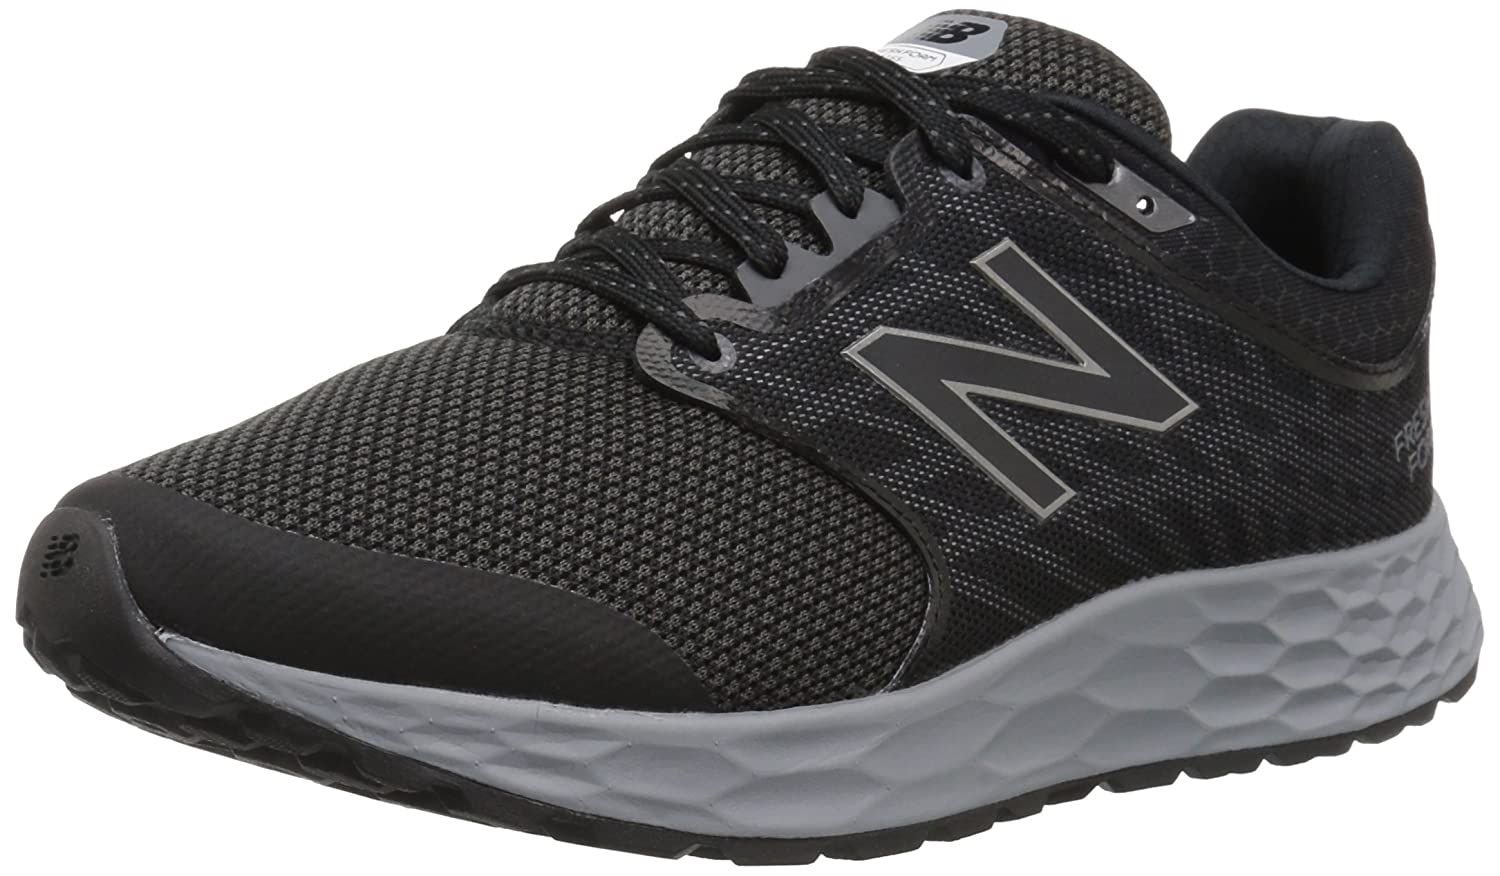 New Balance Men's 1165v1 Fresh Foam Walking schuhe, schwarz Silber, 10 2E US